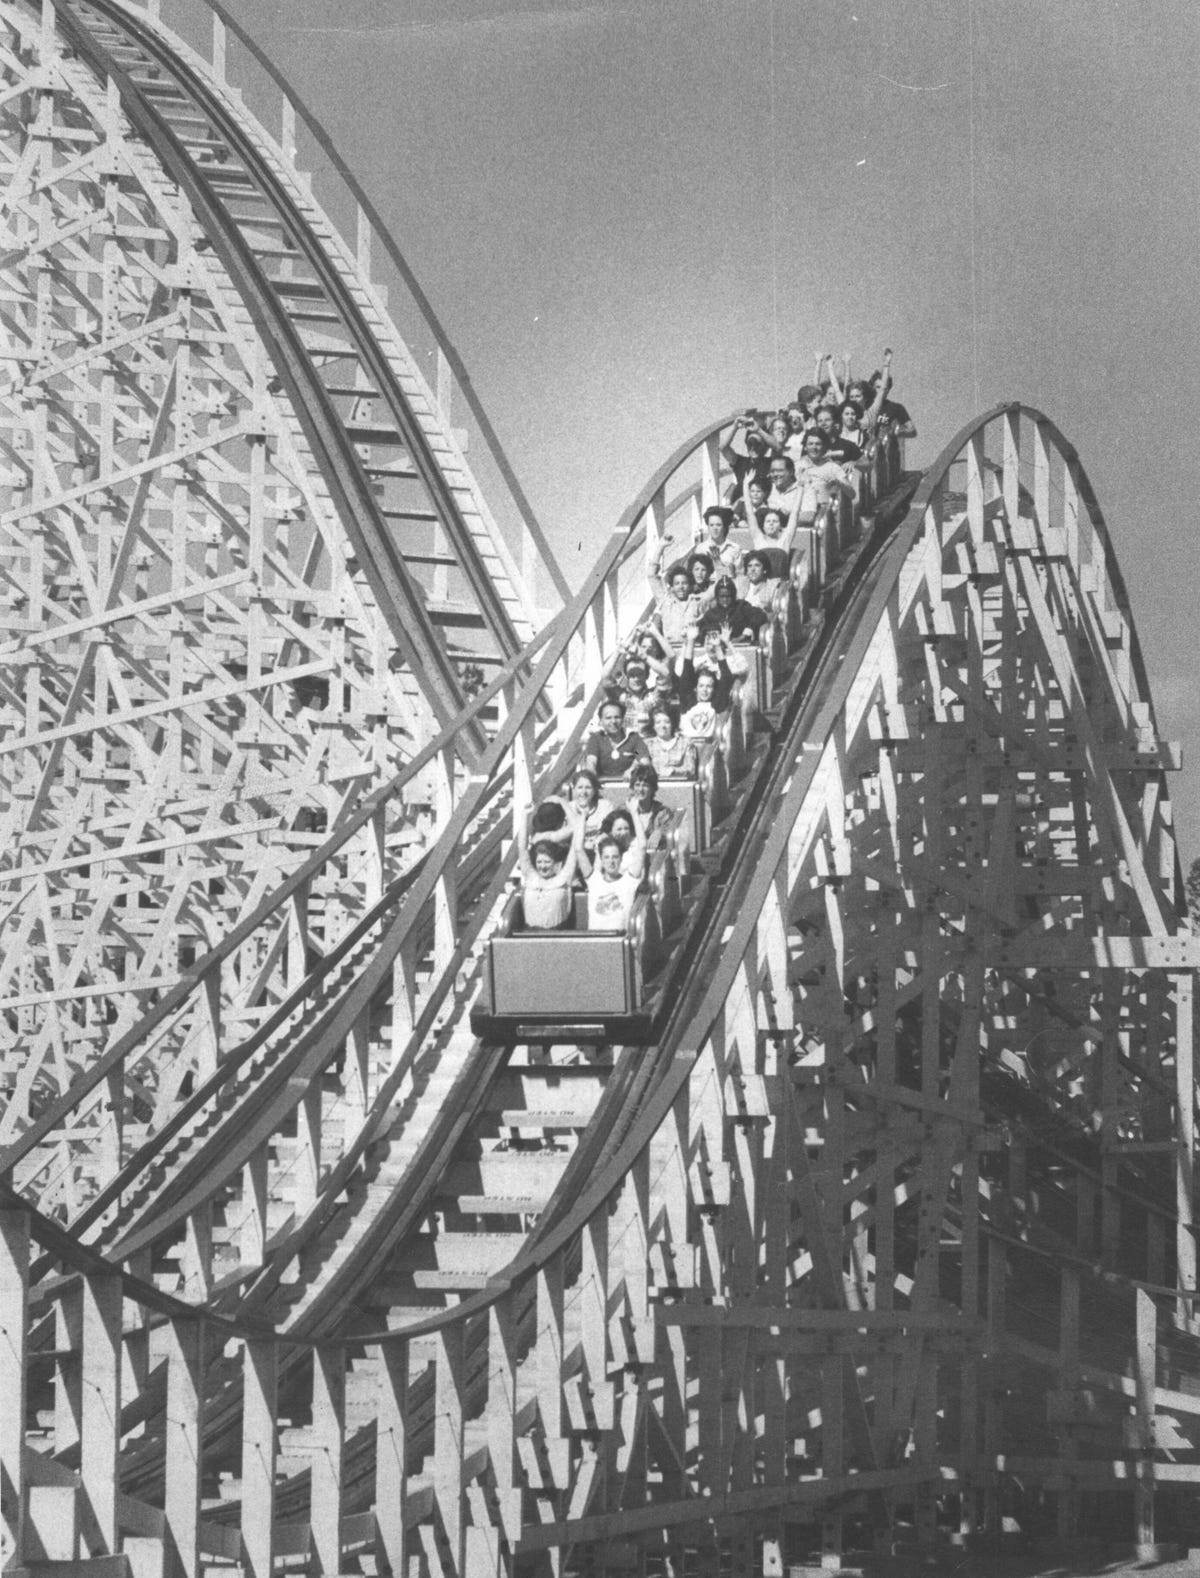 Six Flags Great Adventure: Relive the amusement park's thrilling legacy